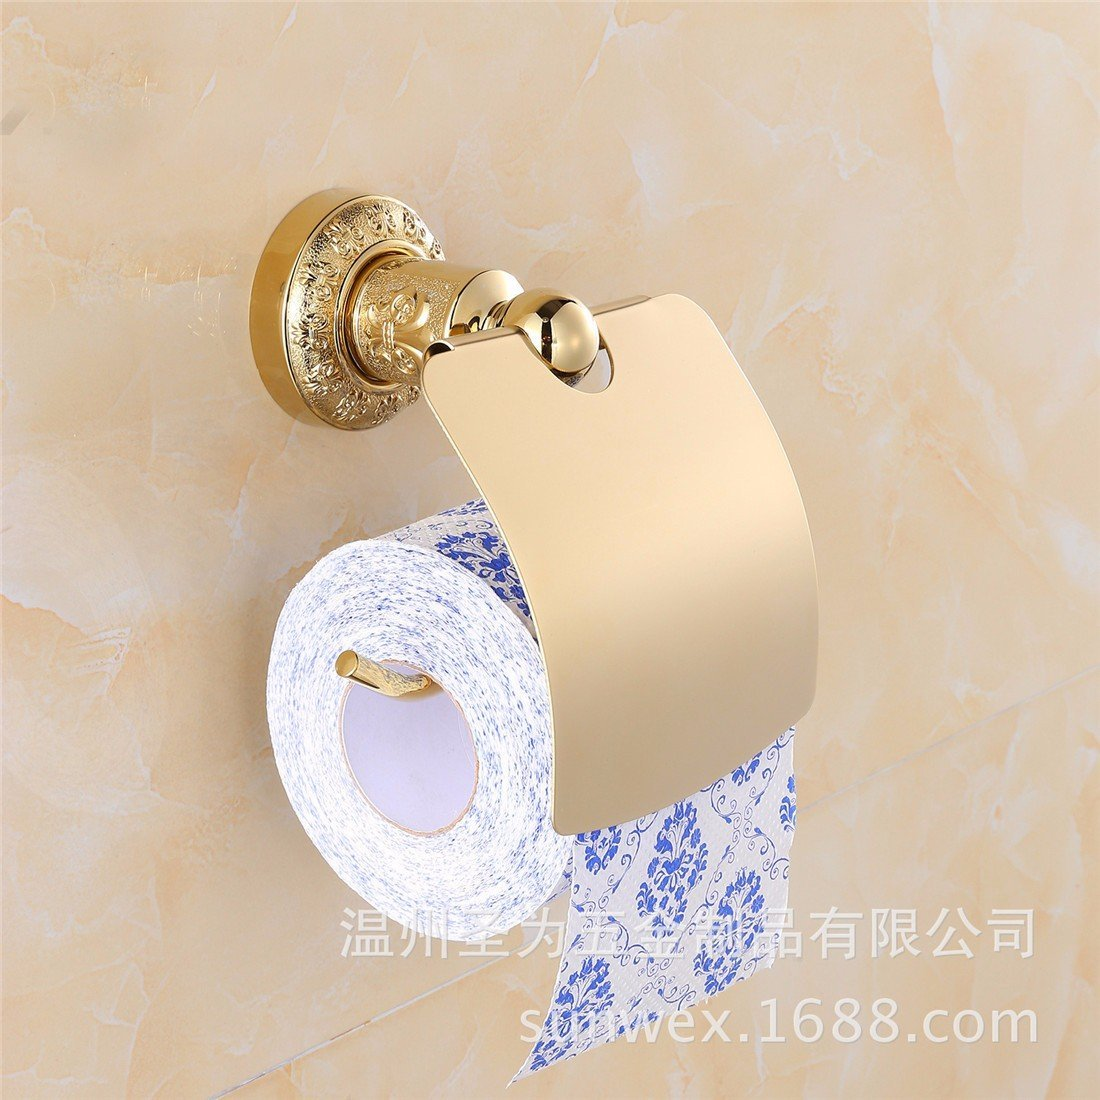 LAONA European style antique gold carving zinc alloy bathroom fittings, toilet paper frame, towel ring,Toilet paper holder